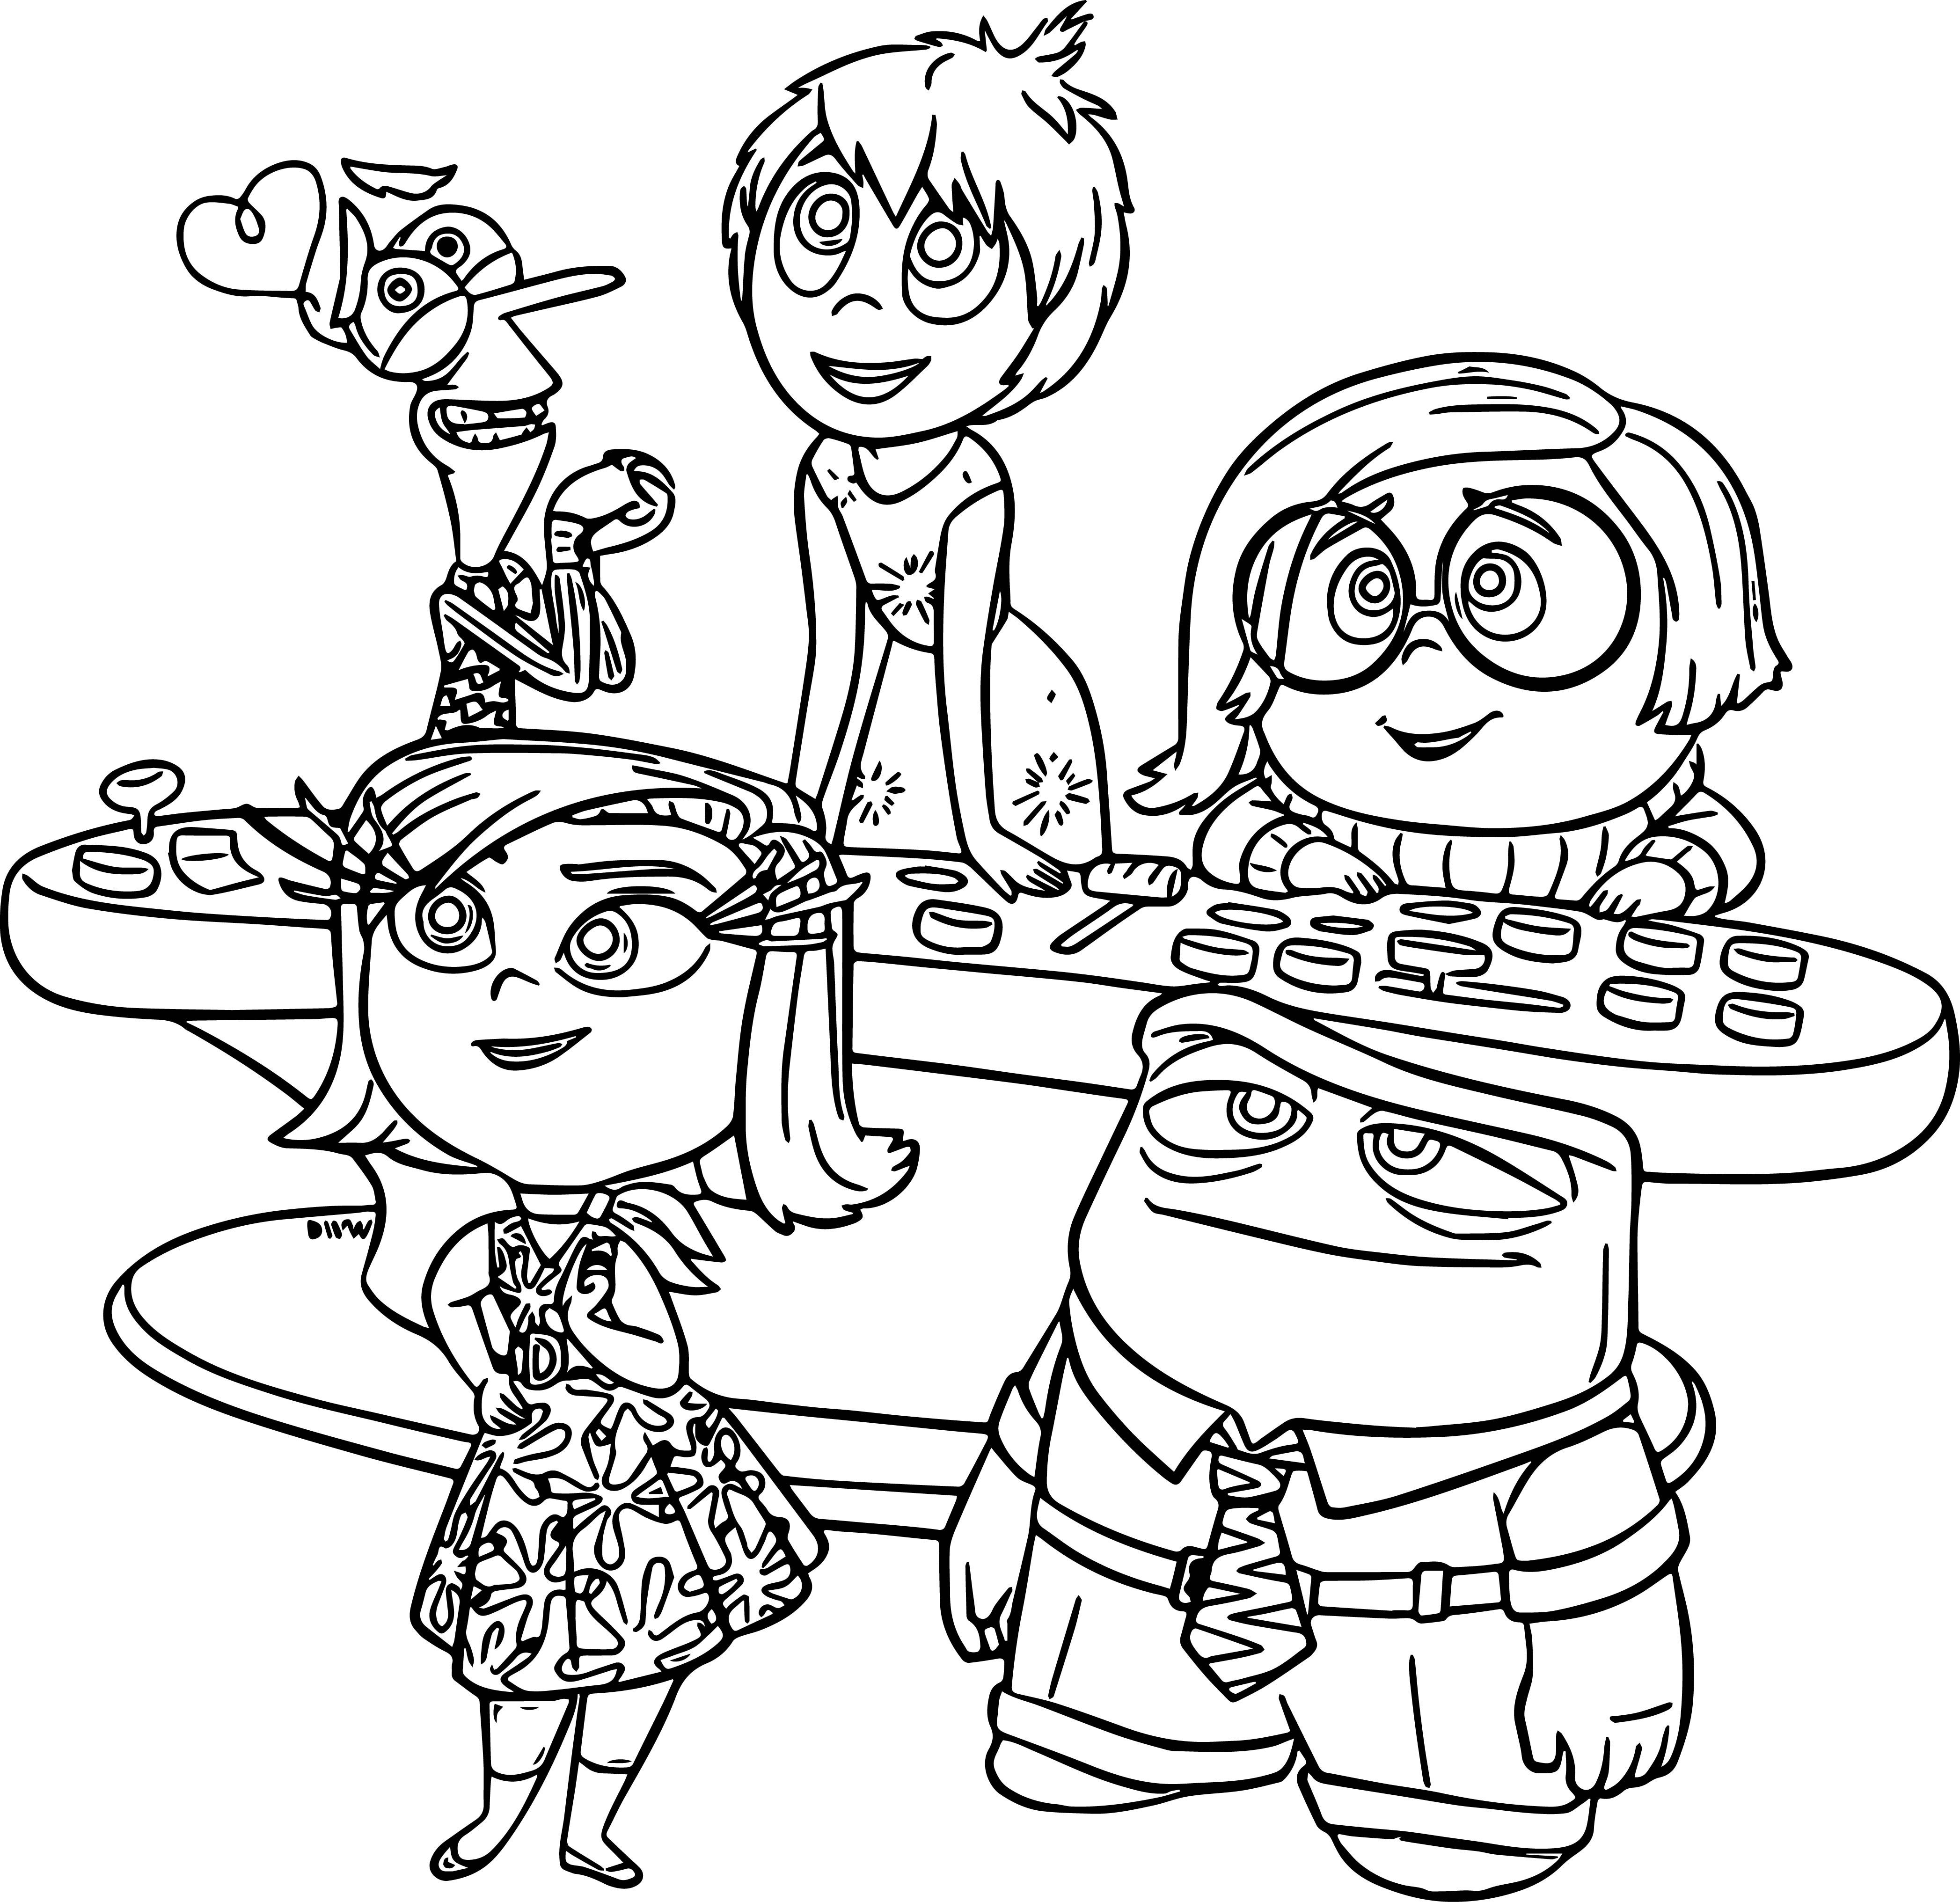 Disney Pixar Inside Out Coloring Page Inside Out Coloring Pages Disney Coloring Pages Cartoon Coloring Pages